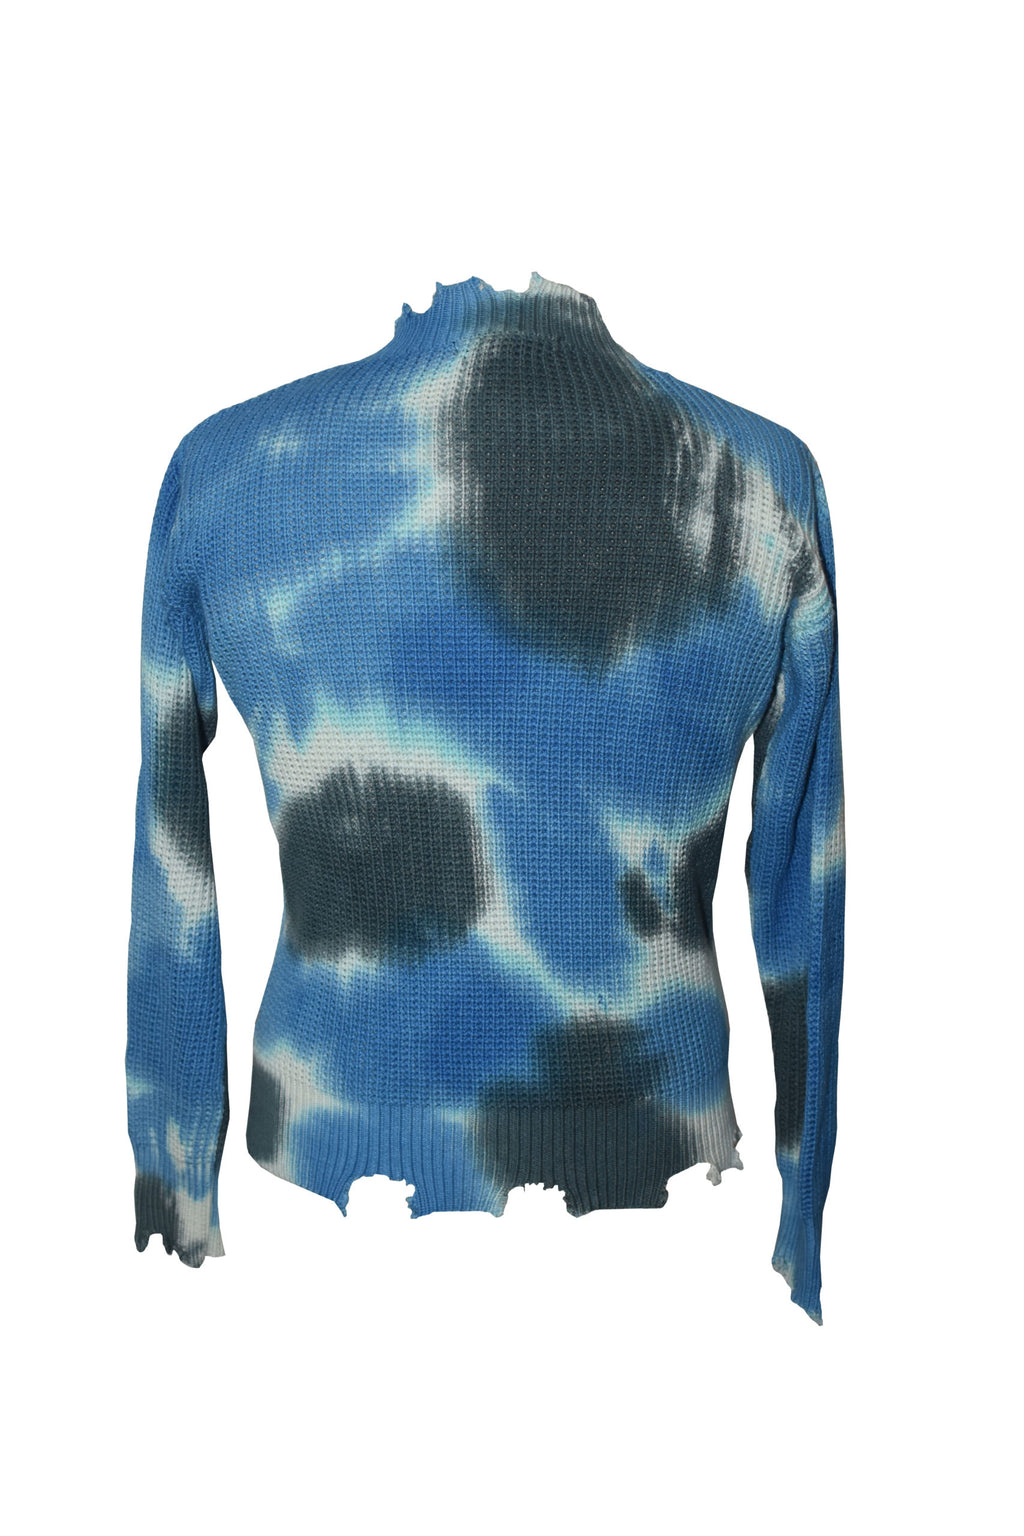 *Blue Tiedye Sweater*